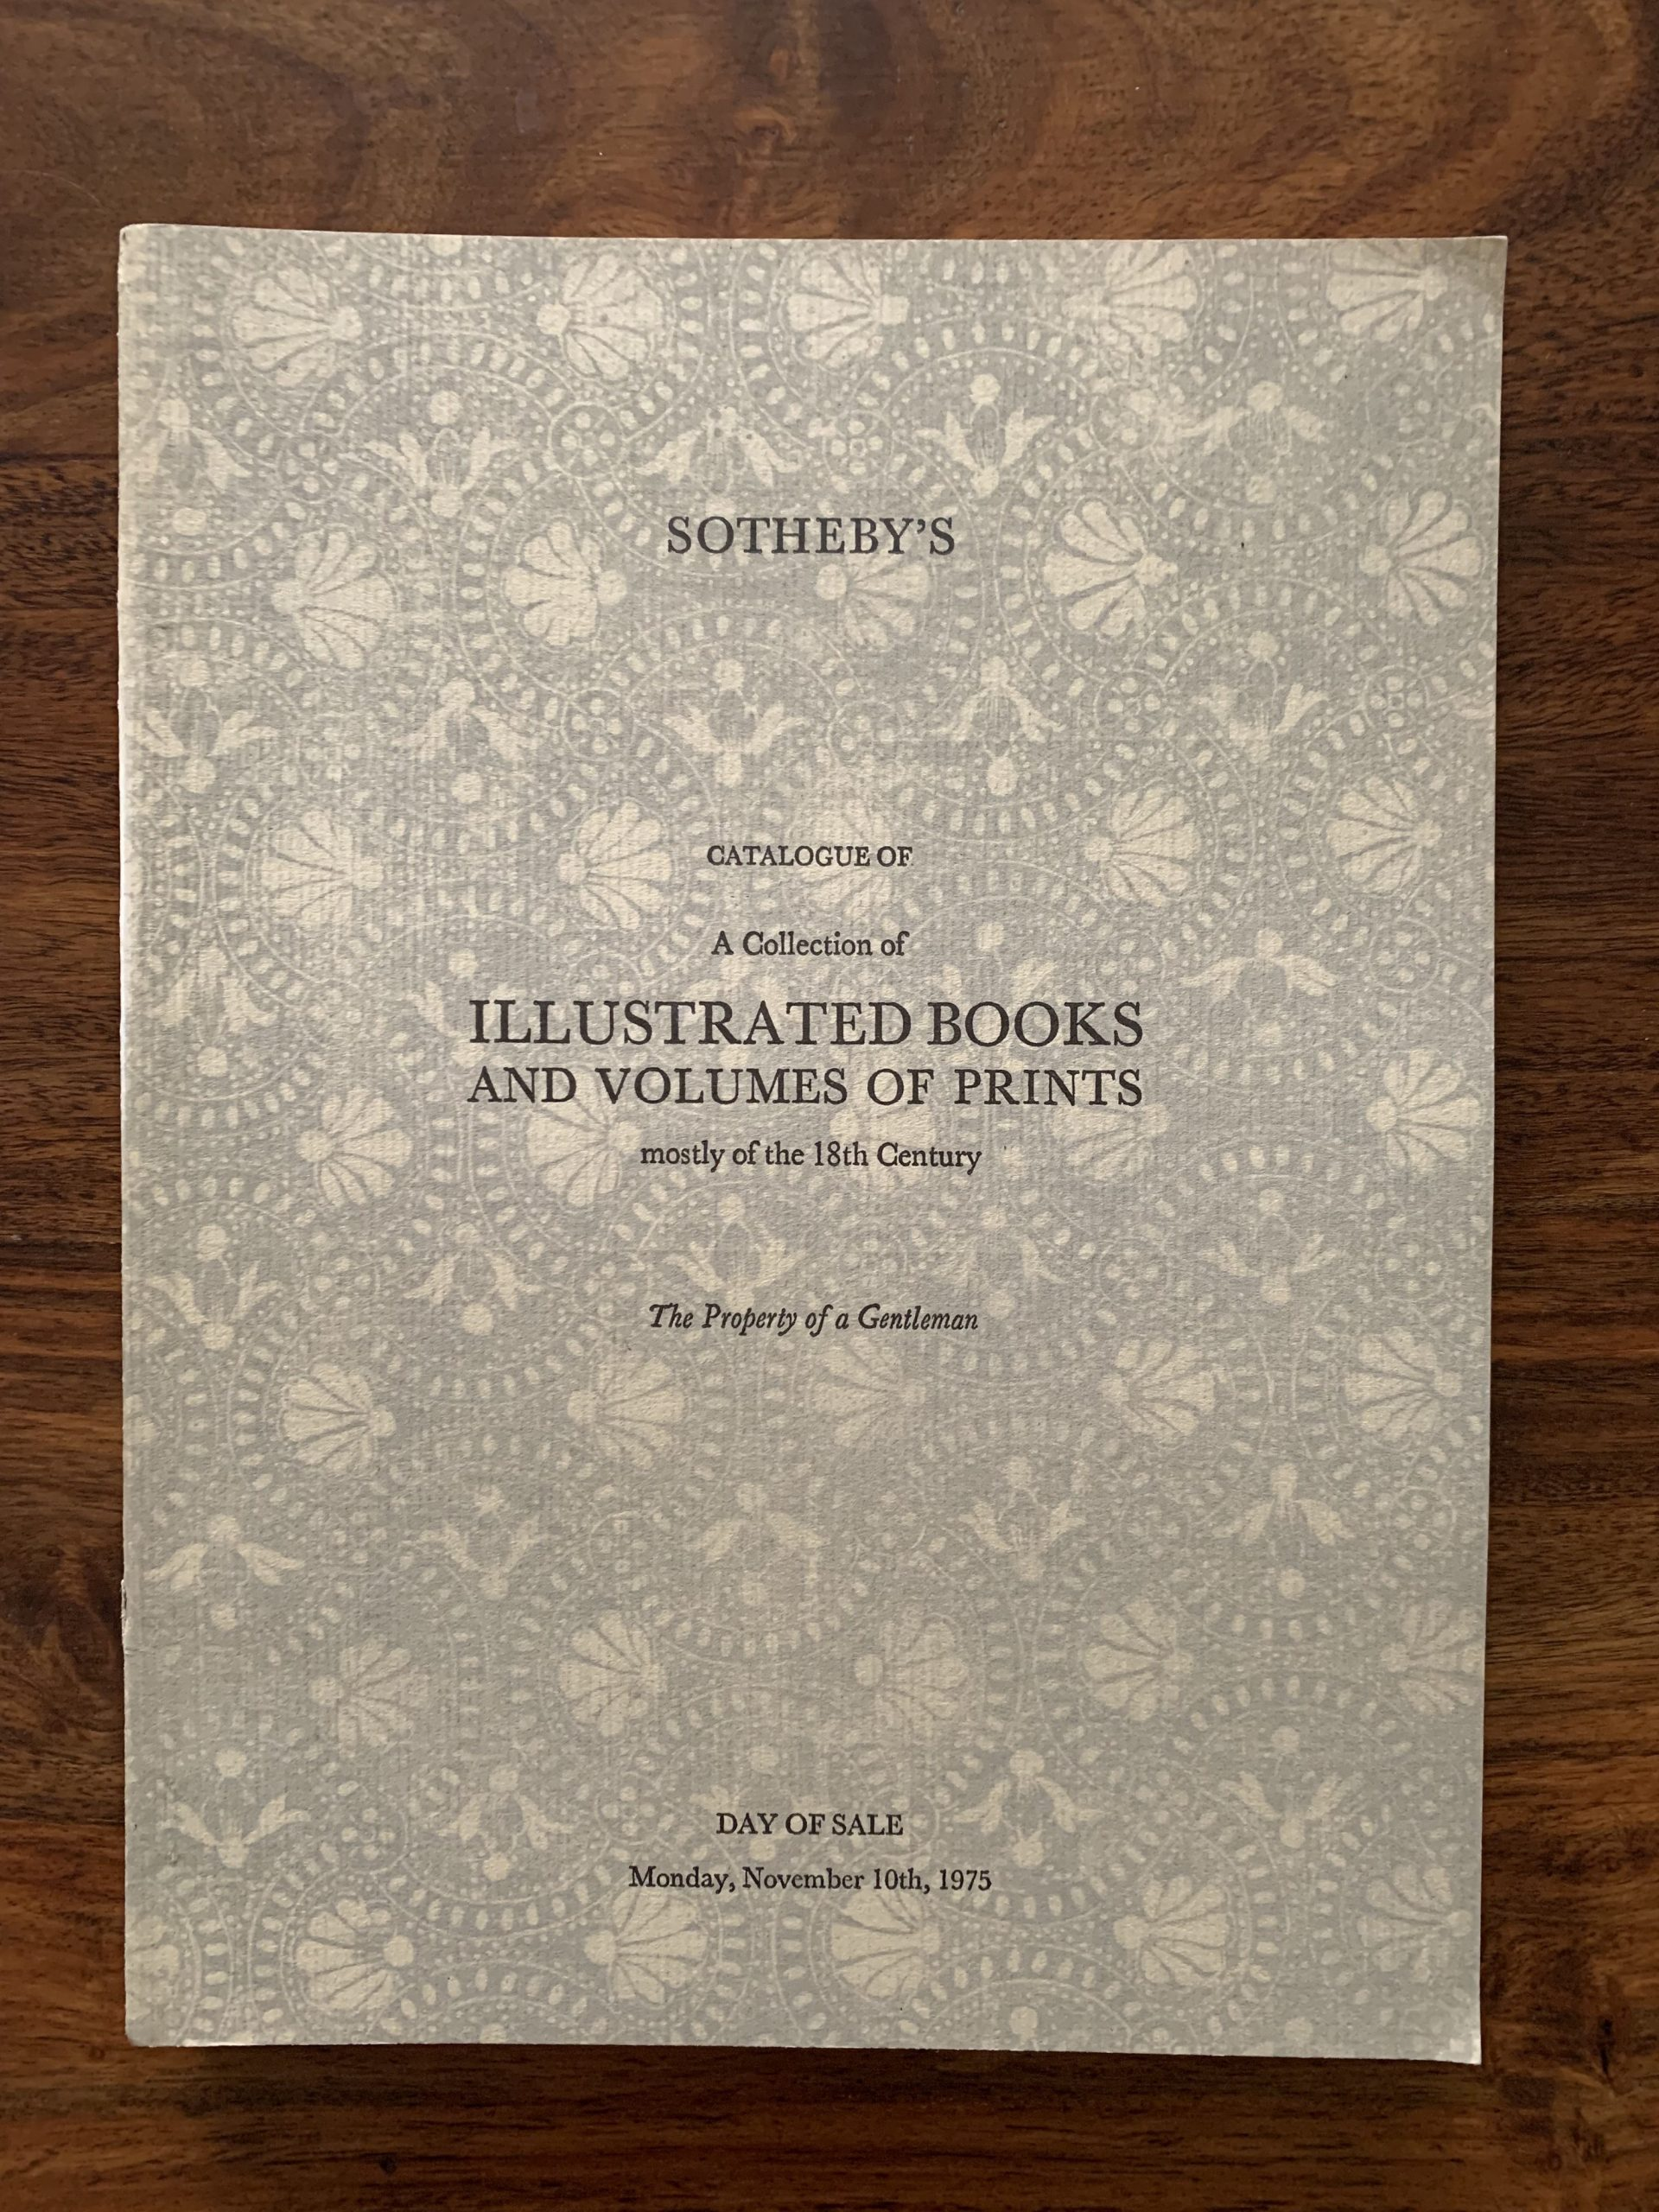 Sotheby's. Catalogue of A Collection of Illustrated Books and Volumes of Prints mostly of the 18th Century.